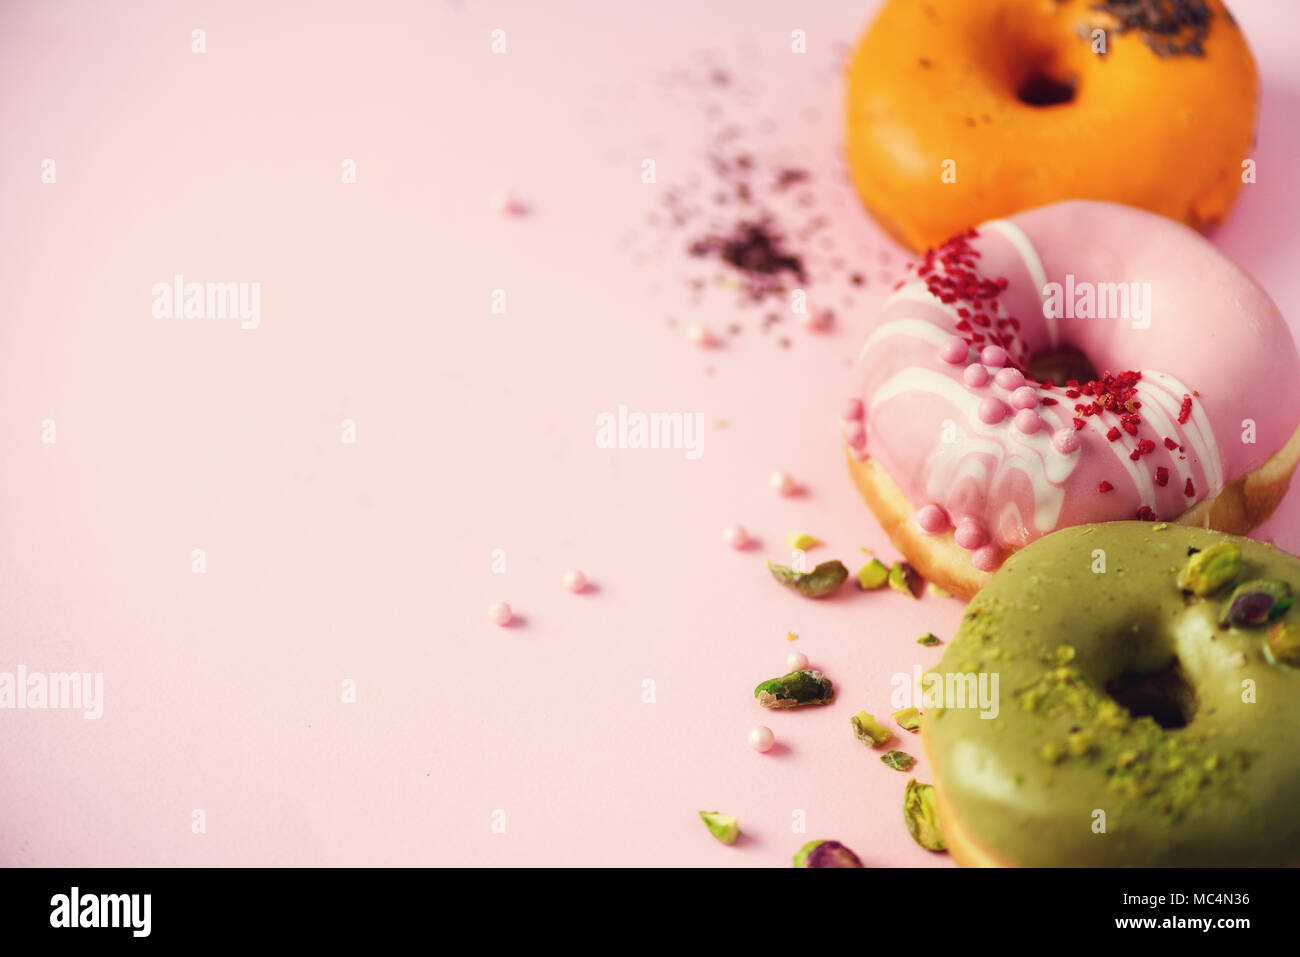 Colorful donuts with icing on pastel pink background. Sweet orange, green, pink doughnuts with pistachio, chocolate. Flat lay, top view, copy space - Stock Image